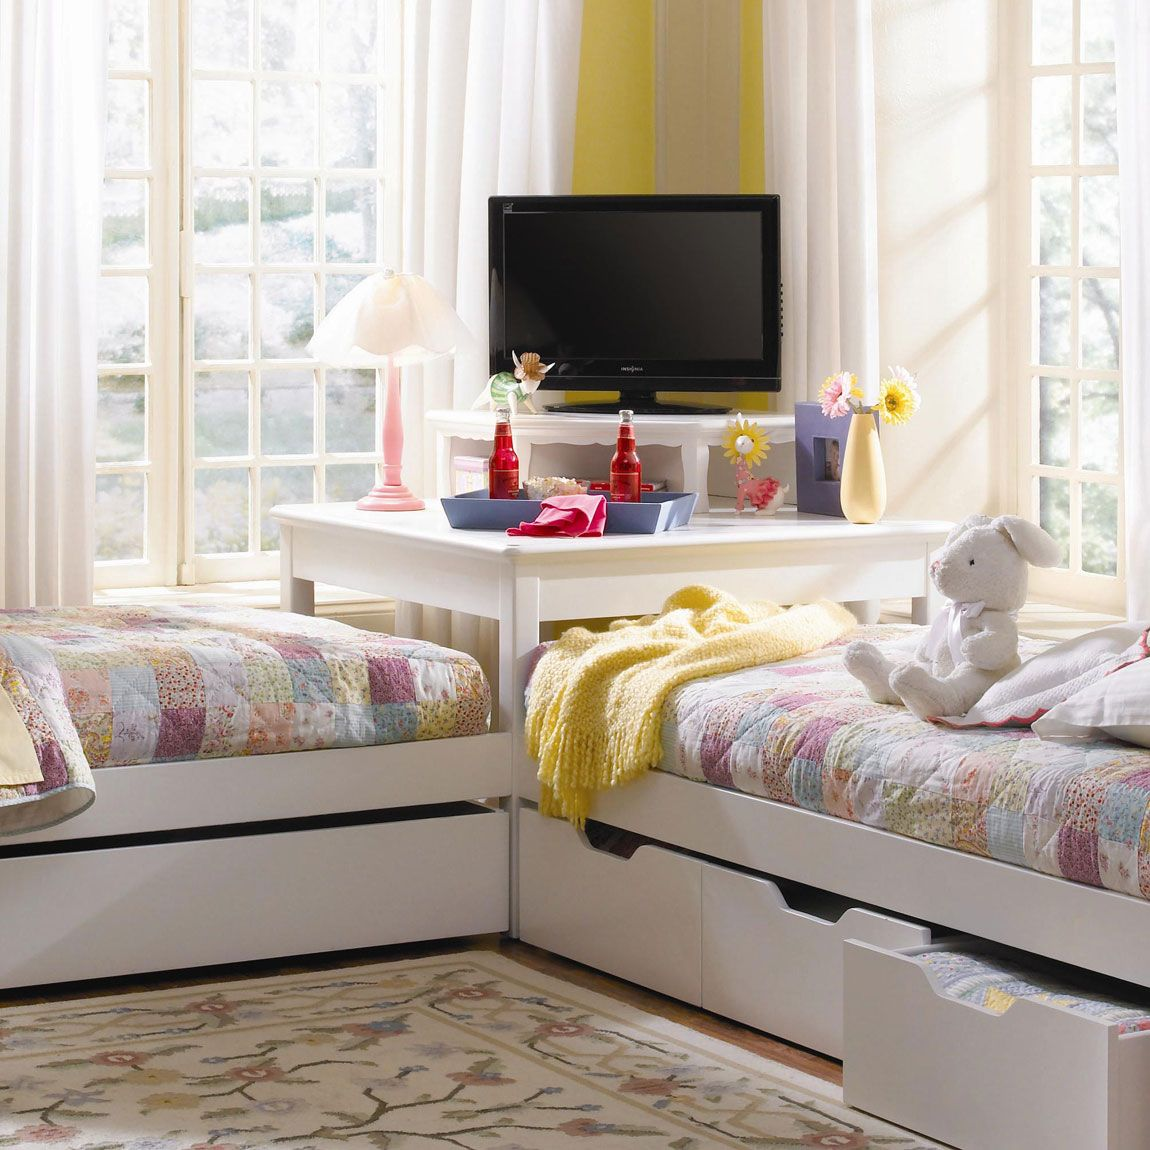 Bedroom Interior, Corner Twin Beds For Your Kids Room